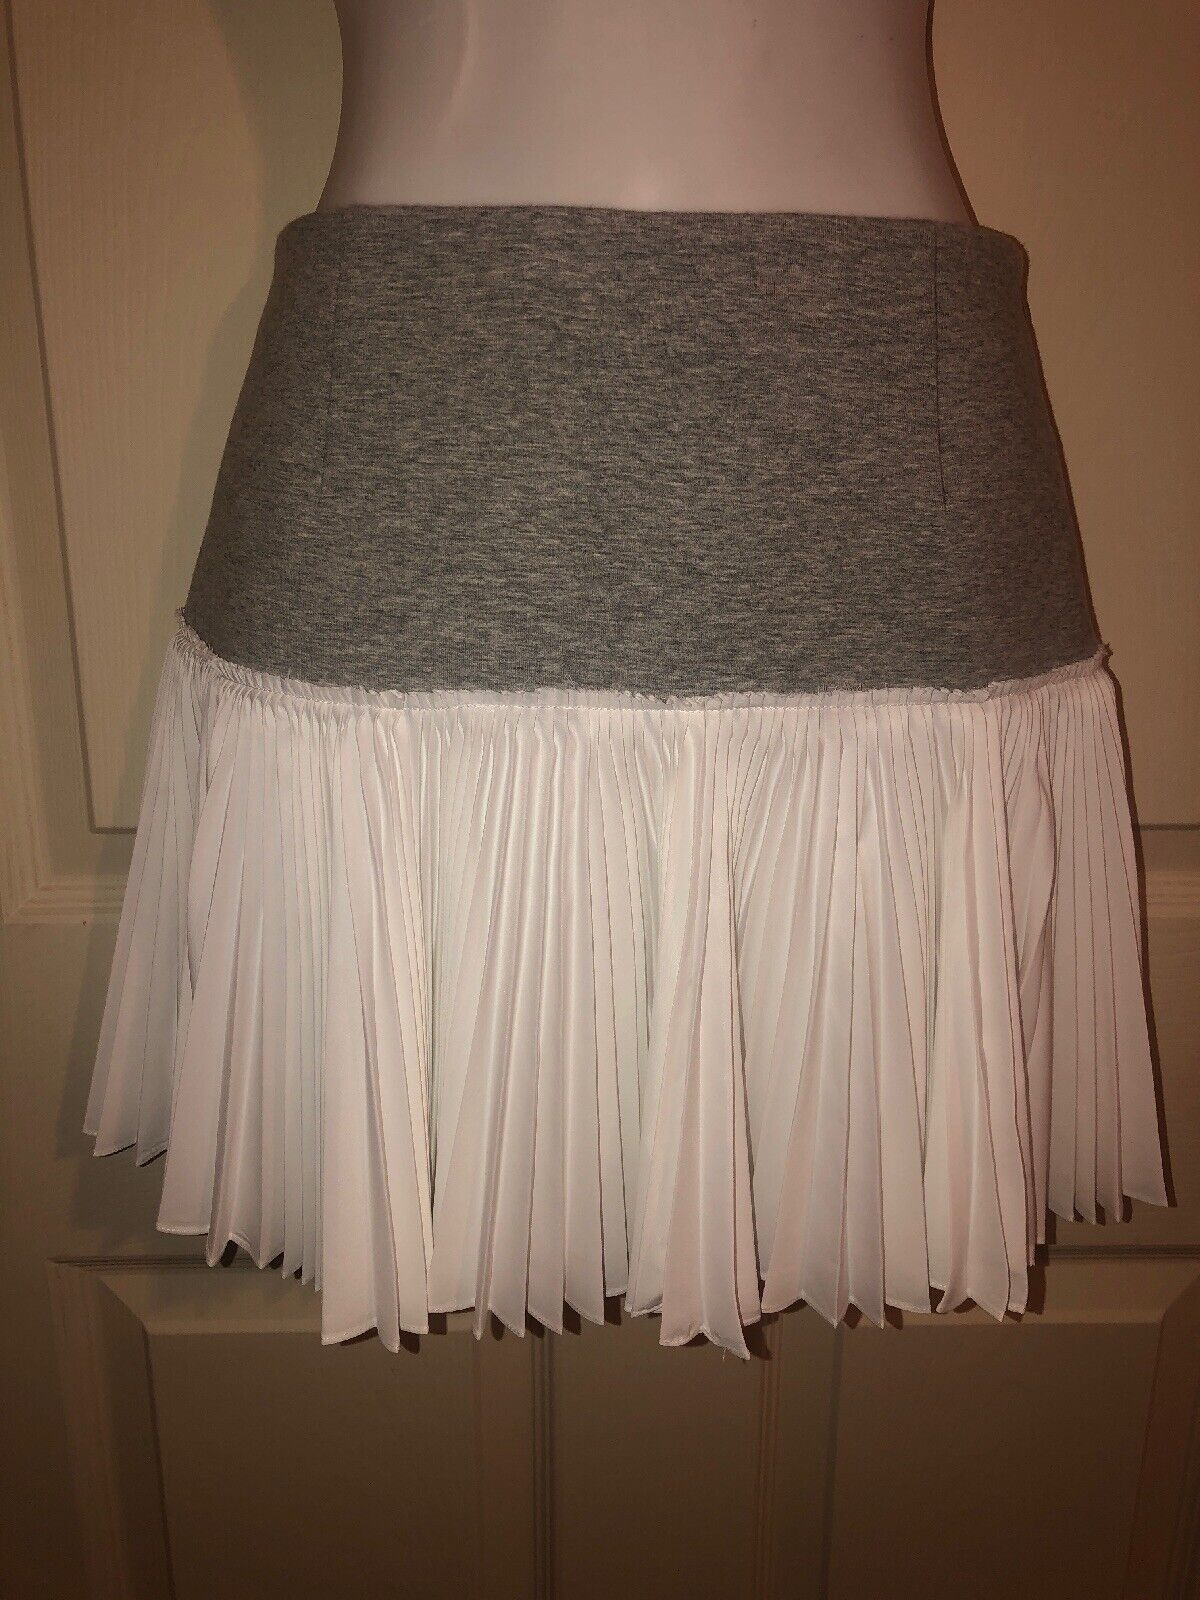 NWOT DEREK LAM 10 CROSBY Grey White Pleated Tennis Skirt Sz 0